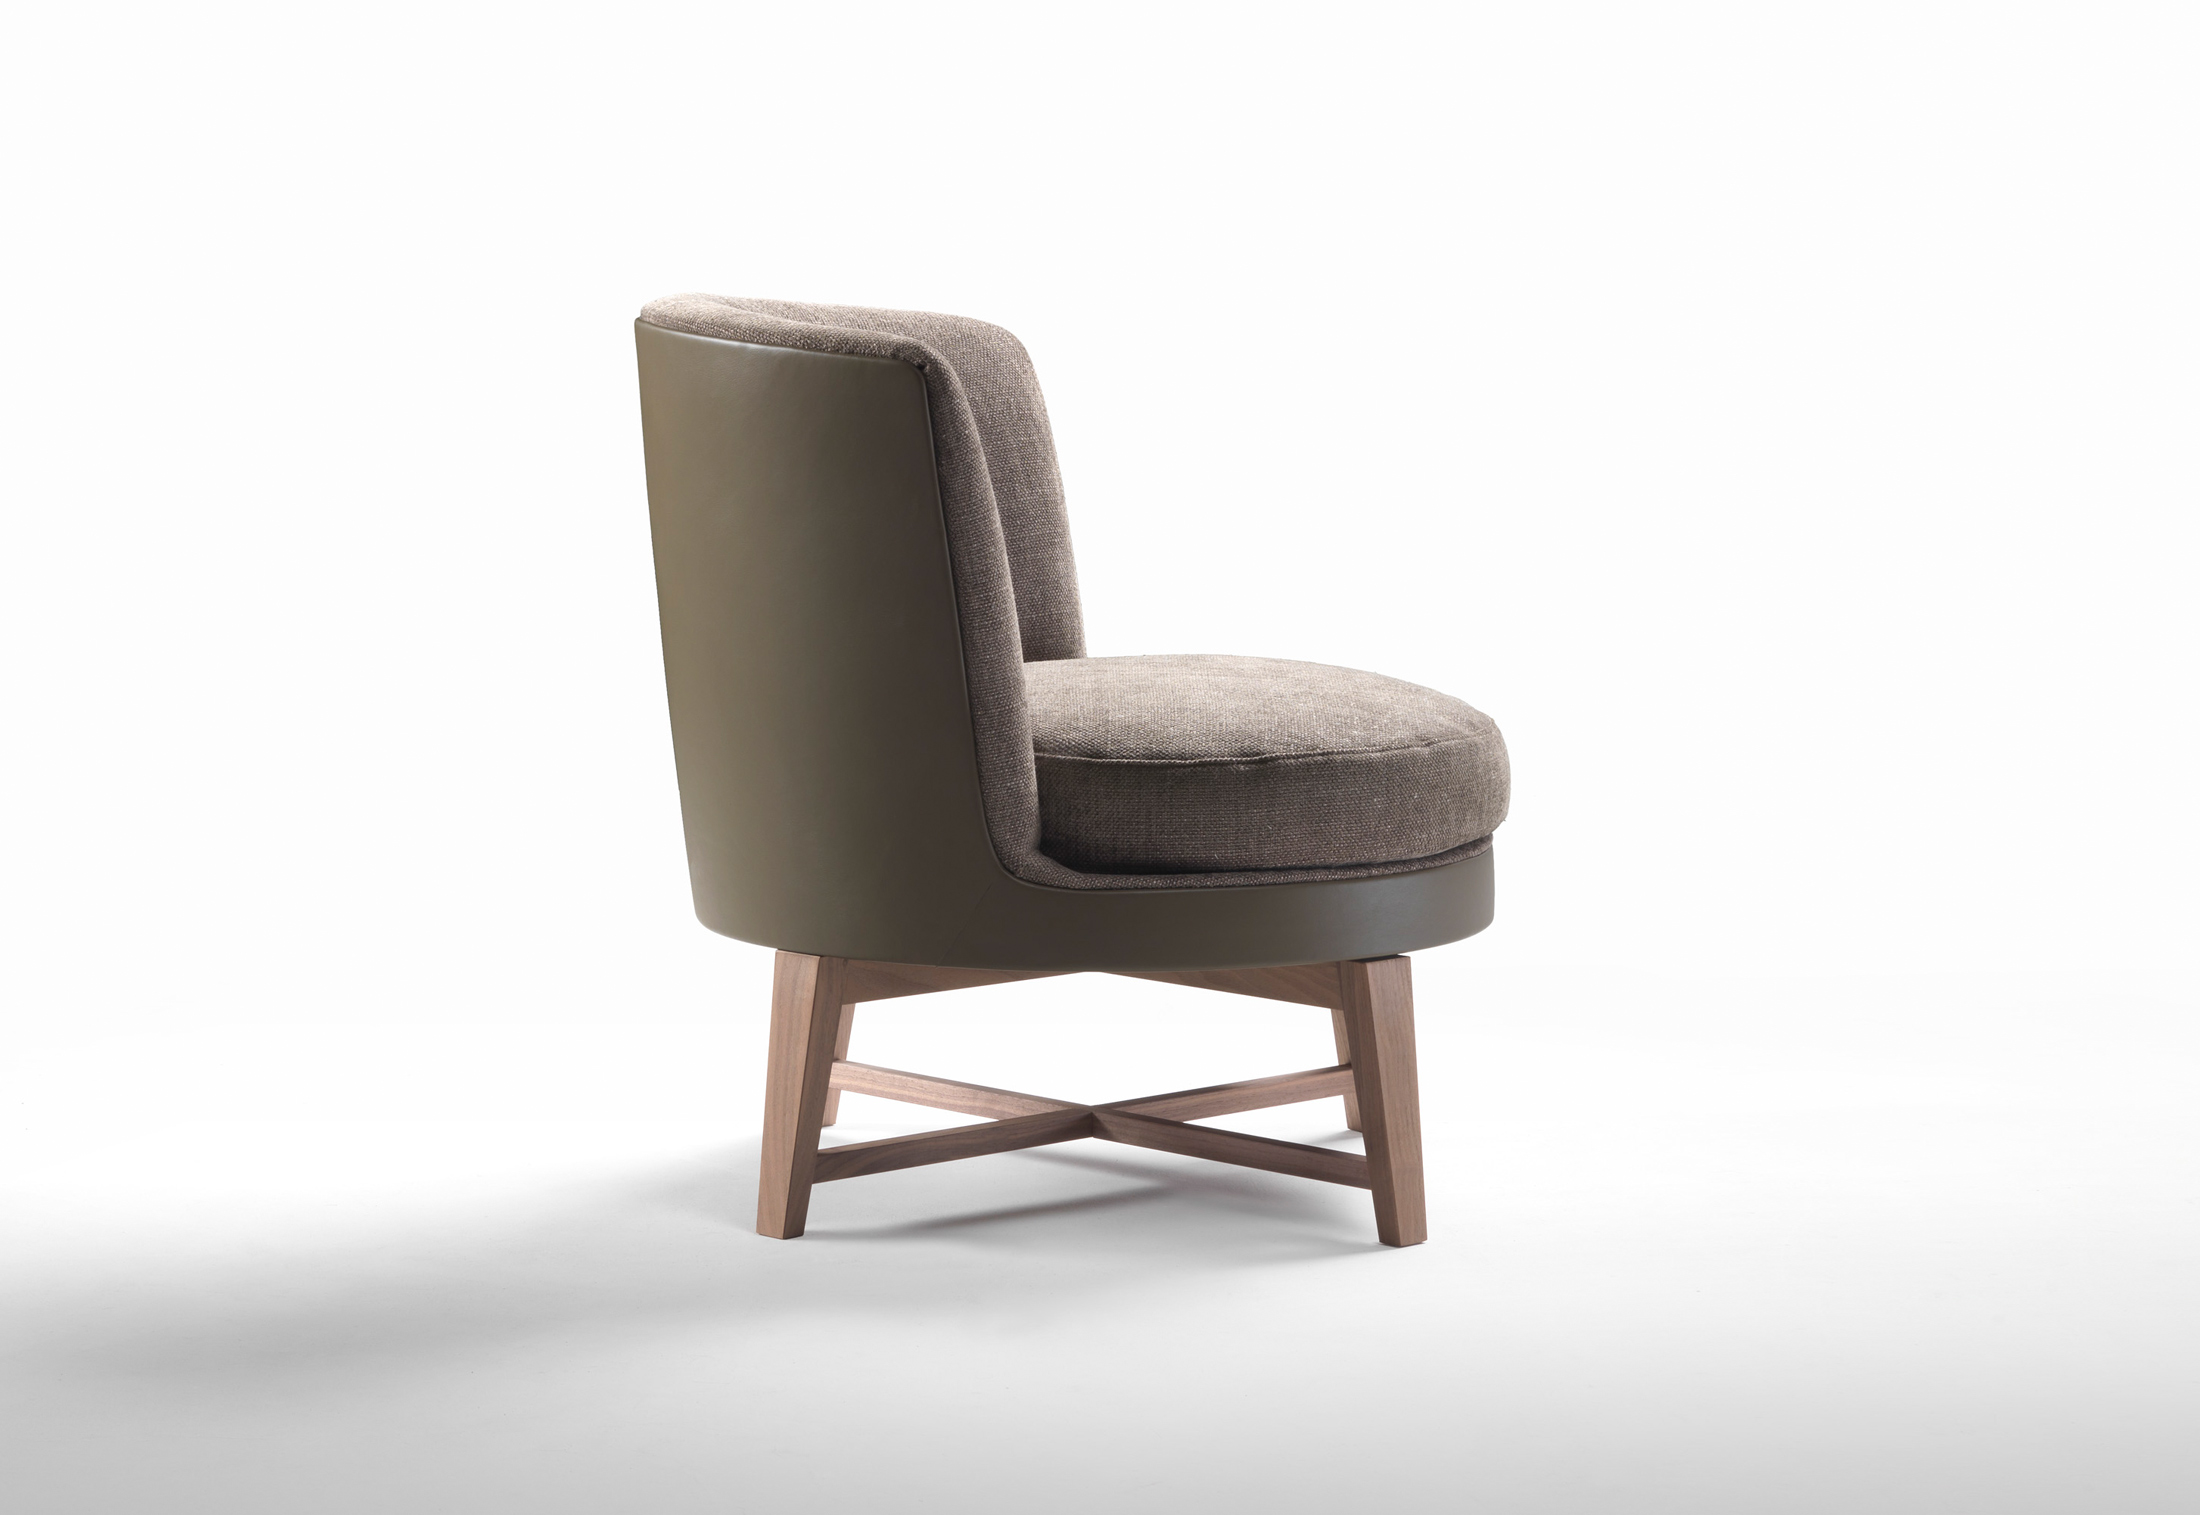 Sessel Holzgestell Feel Good Sessel Holzgestell Von Flexform Stylepark